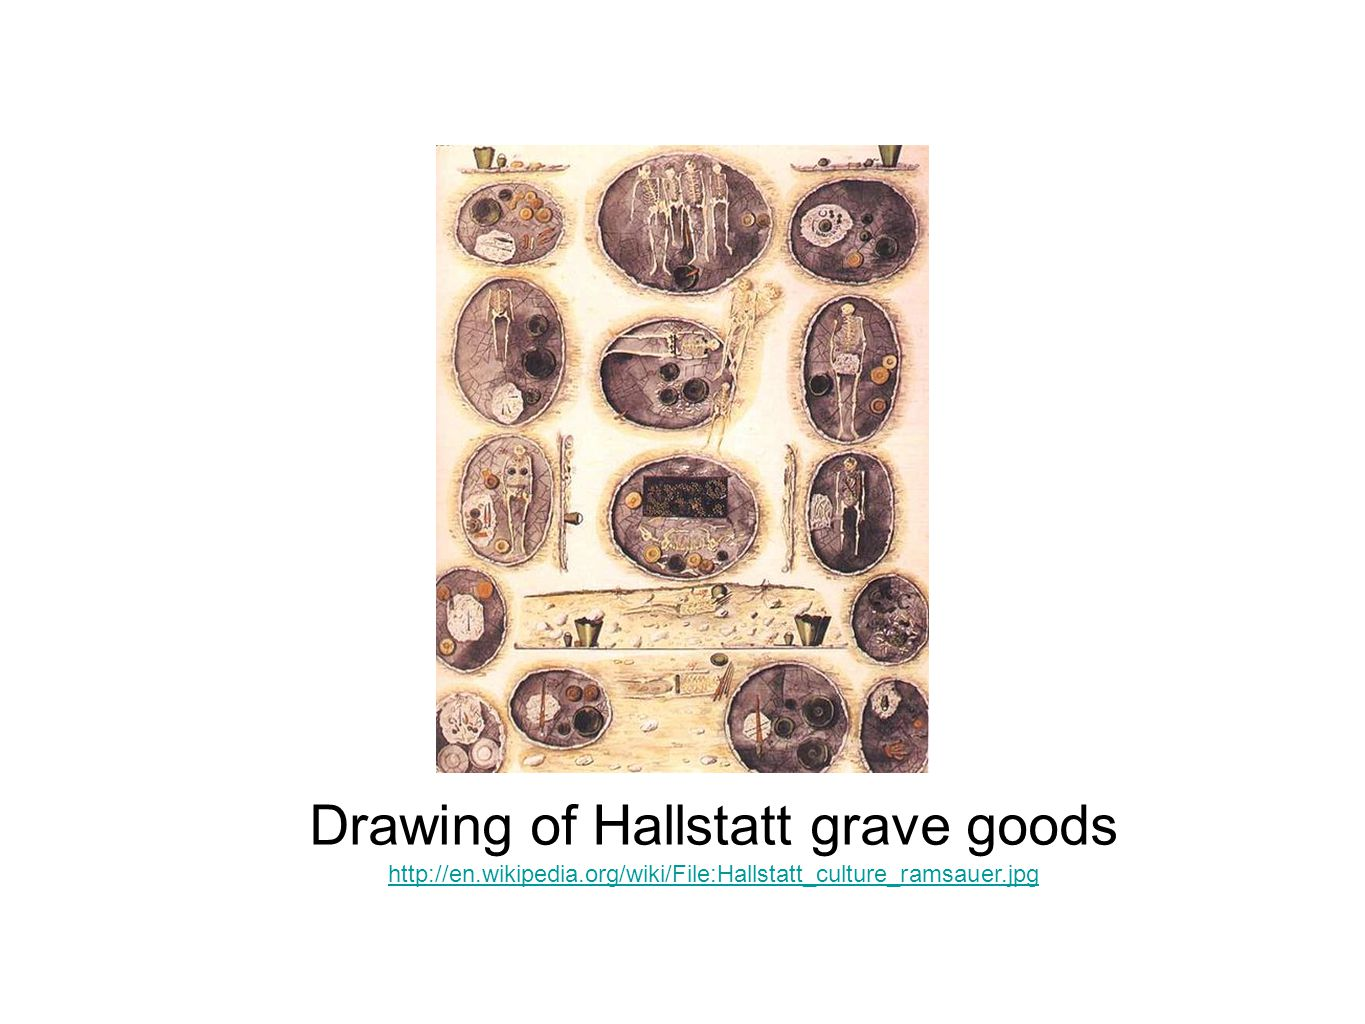 Drawing of Hallstatt grave goods http://en.wikipedia.org/wiki/File:Hallstatt_culture_ramsauer.jpg